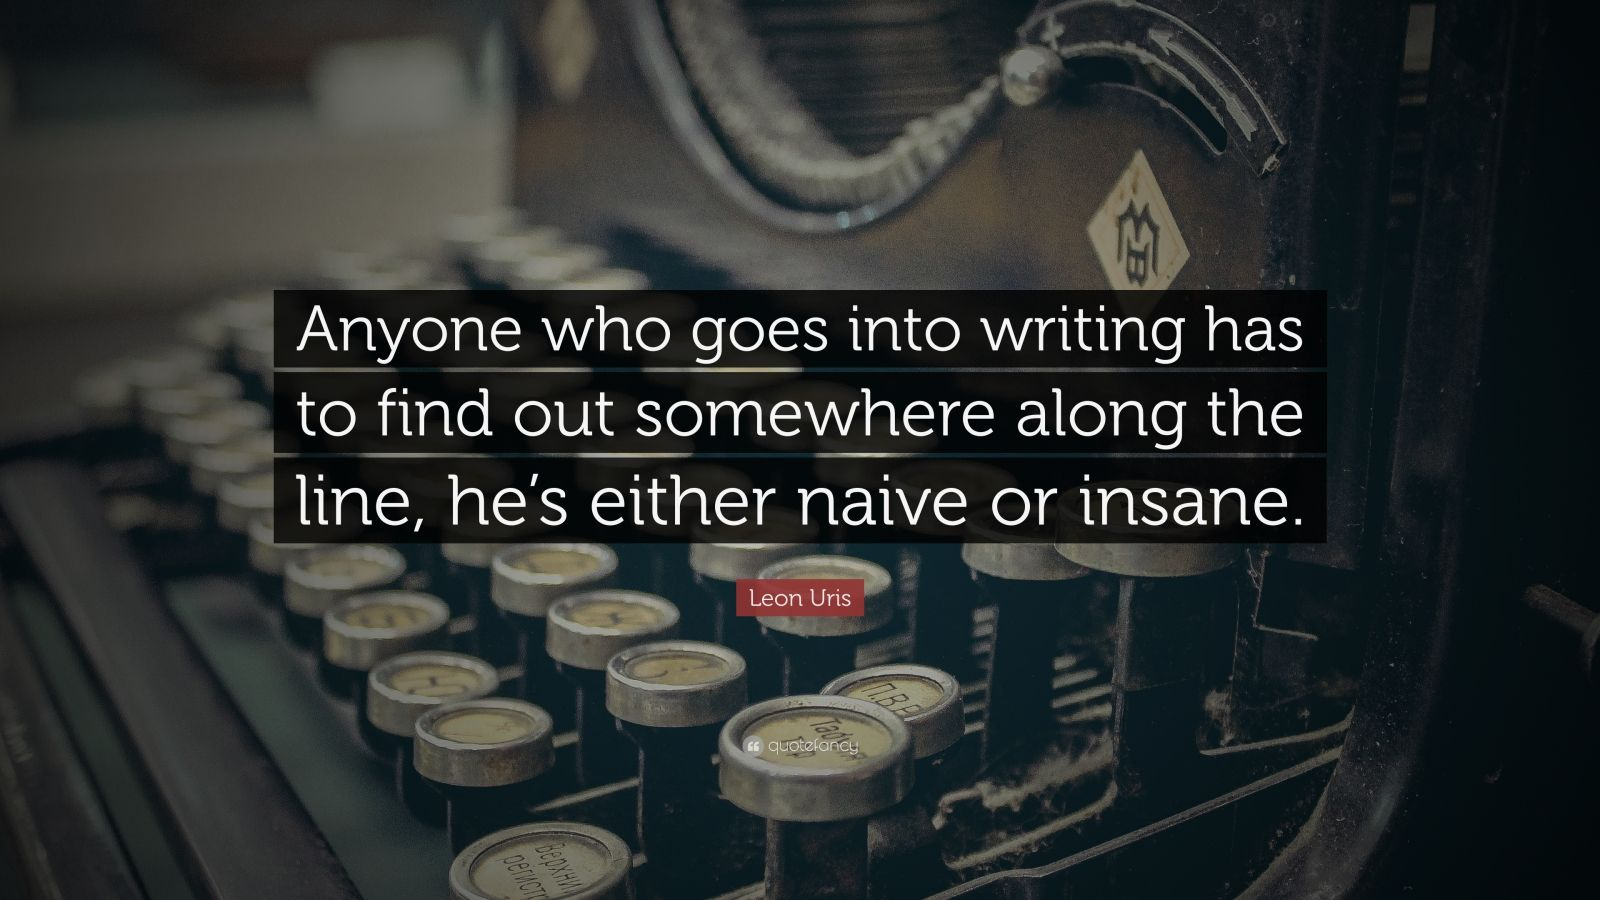 """Leon Uris Quote: """"Anyone who goes into writing has to find out somewhere along the line, he's either naive or insane."""""""